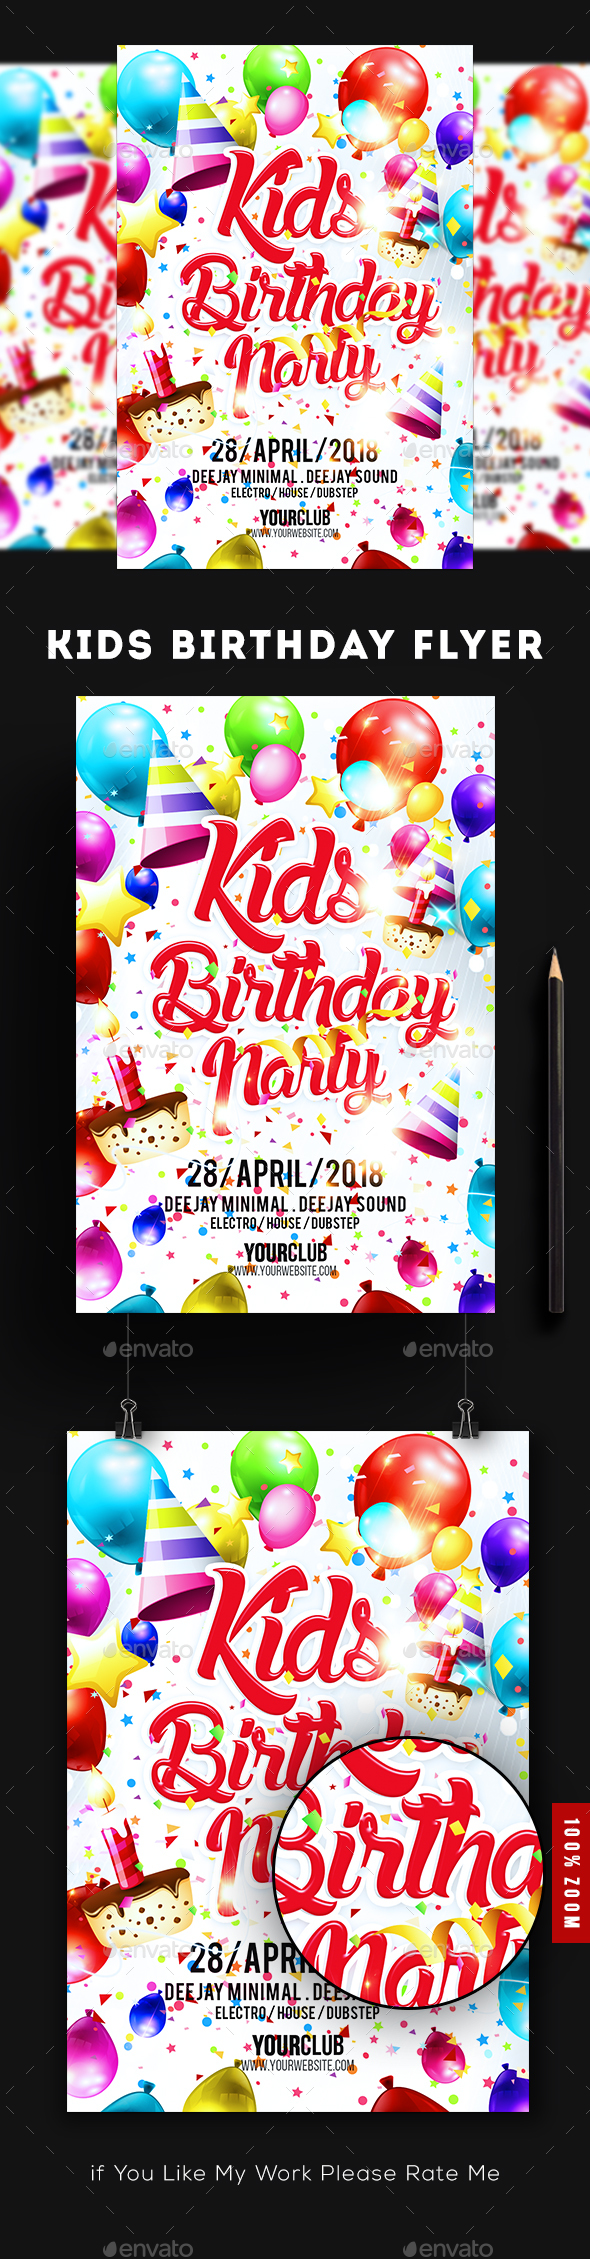 Kids Birthday Party Flyer - Flyers Print Templates